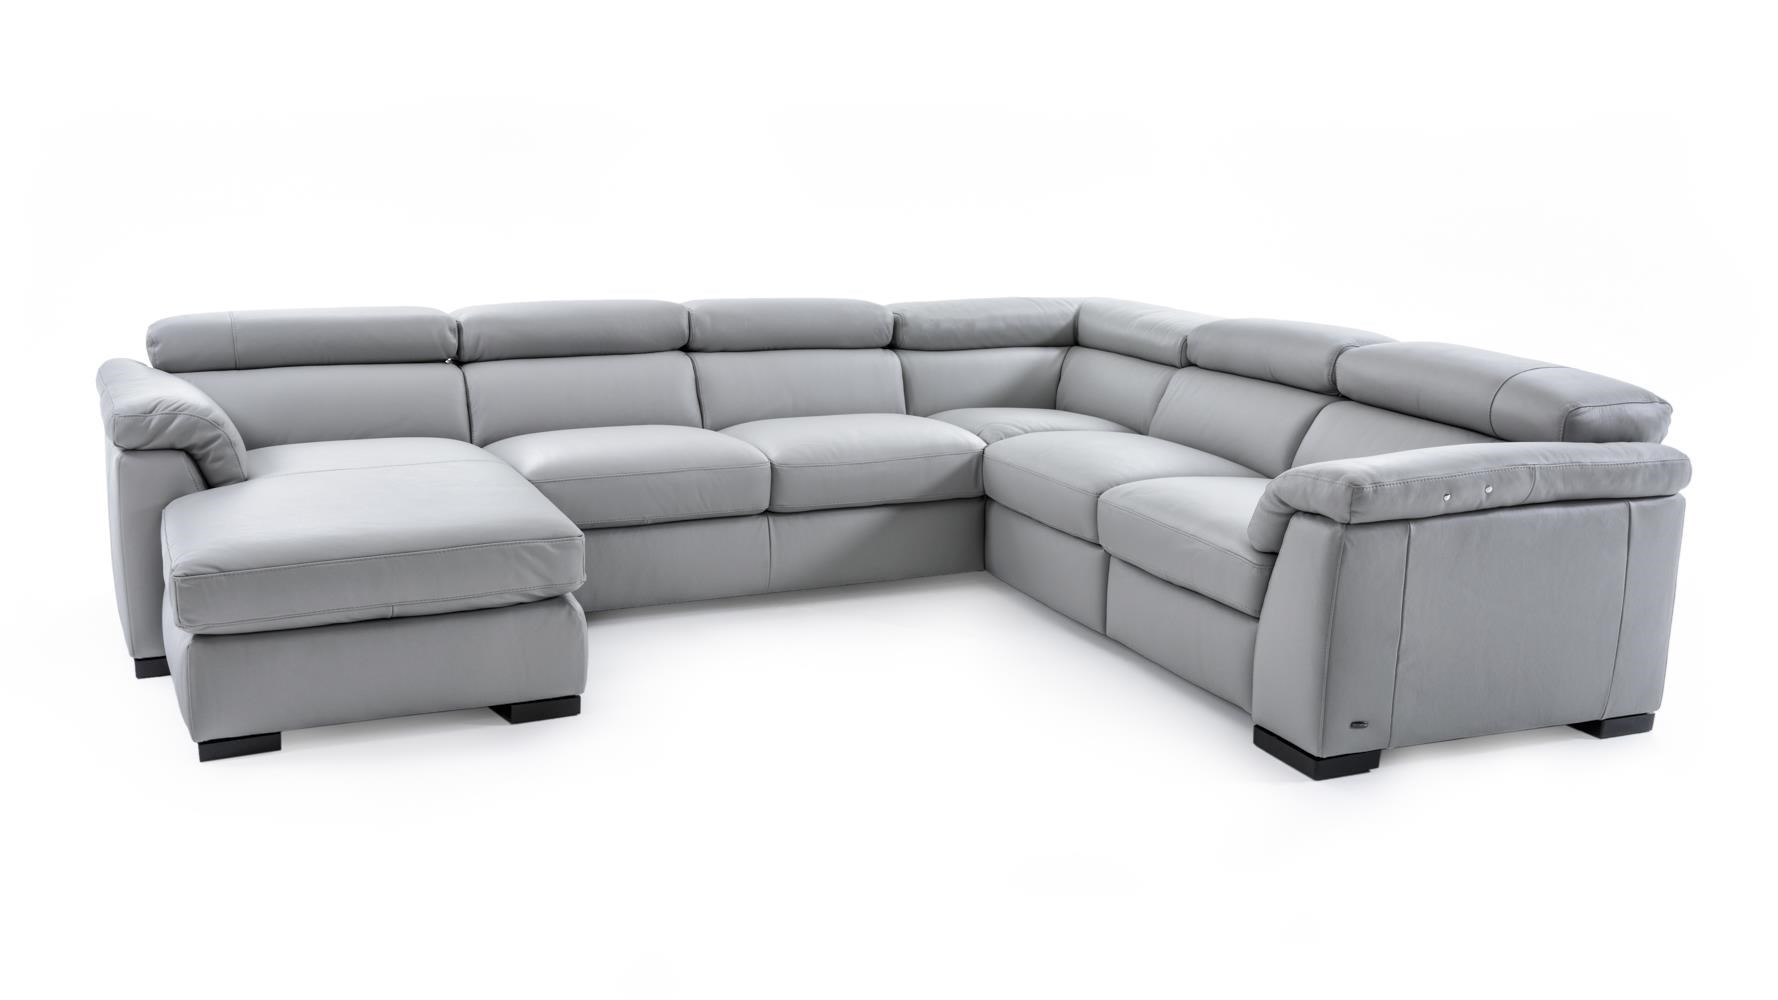 leather sofa with chaise and recliner lazy boy sofas sleeper natuzzi editions b634 sect 1 gray contemporary